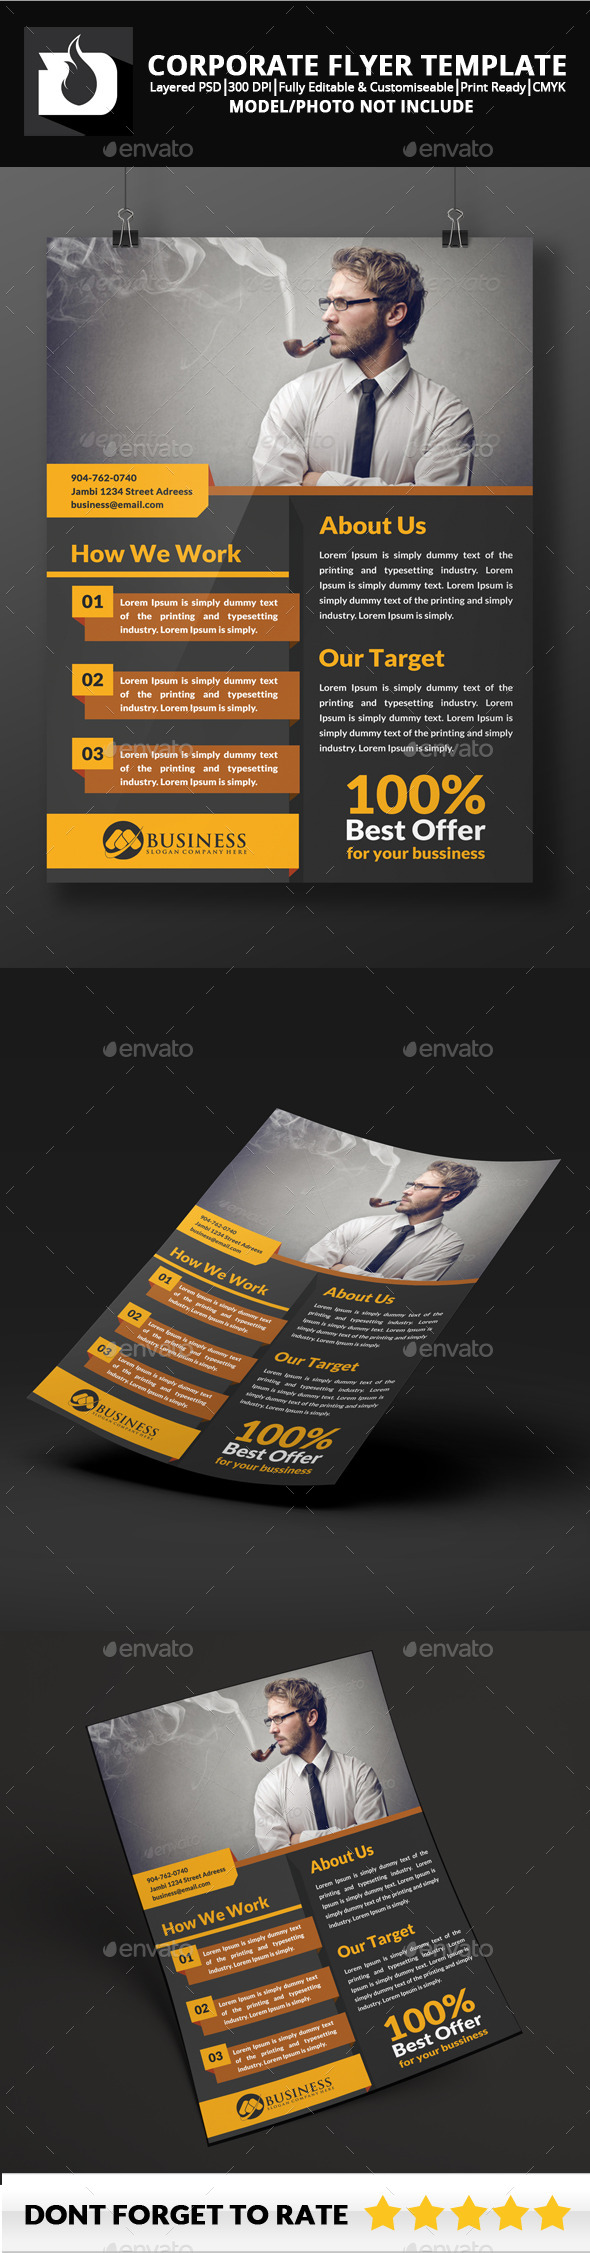 Flyer Template 1.7 - Corporate Flyers